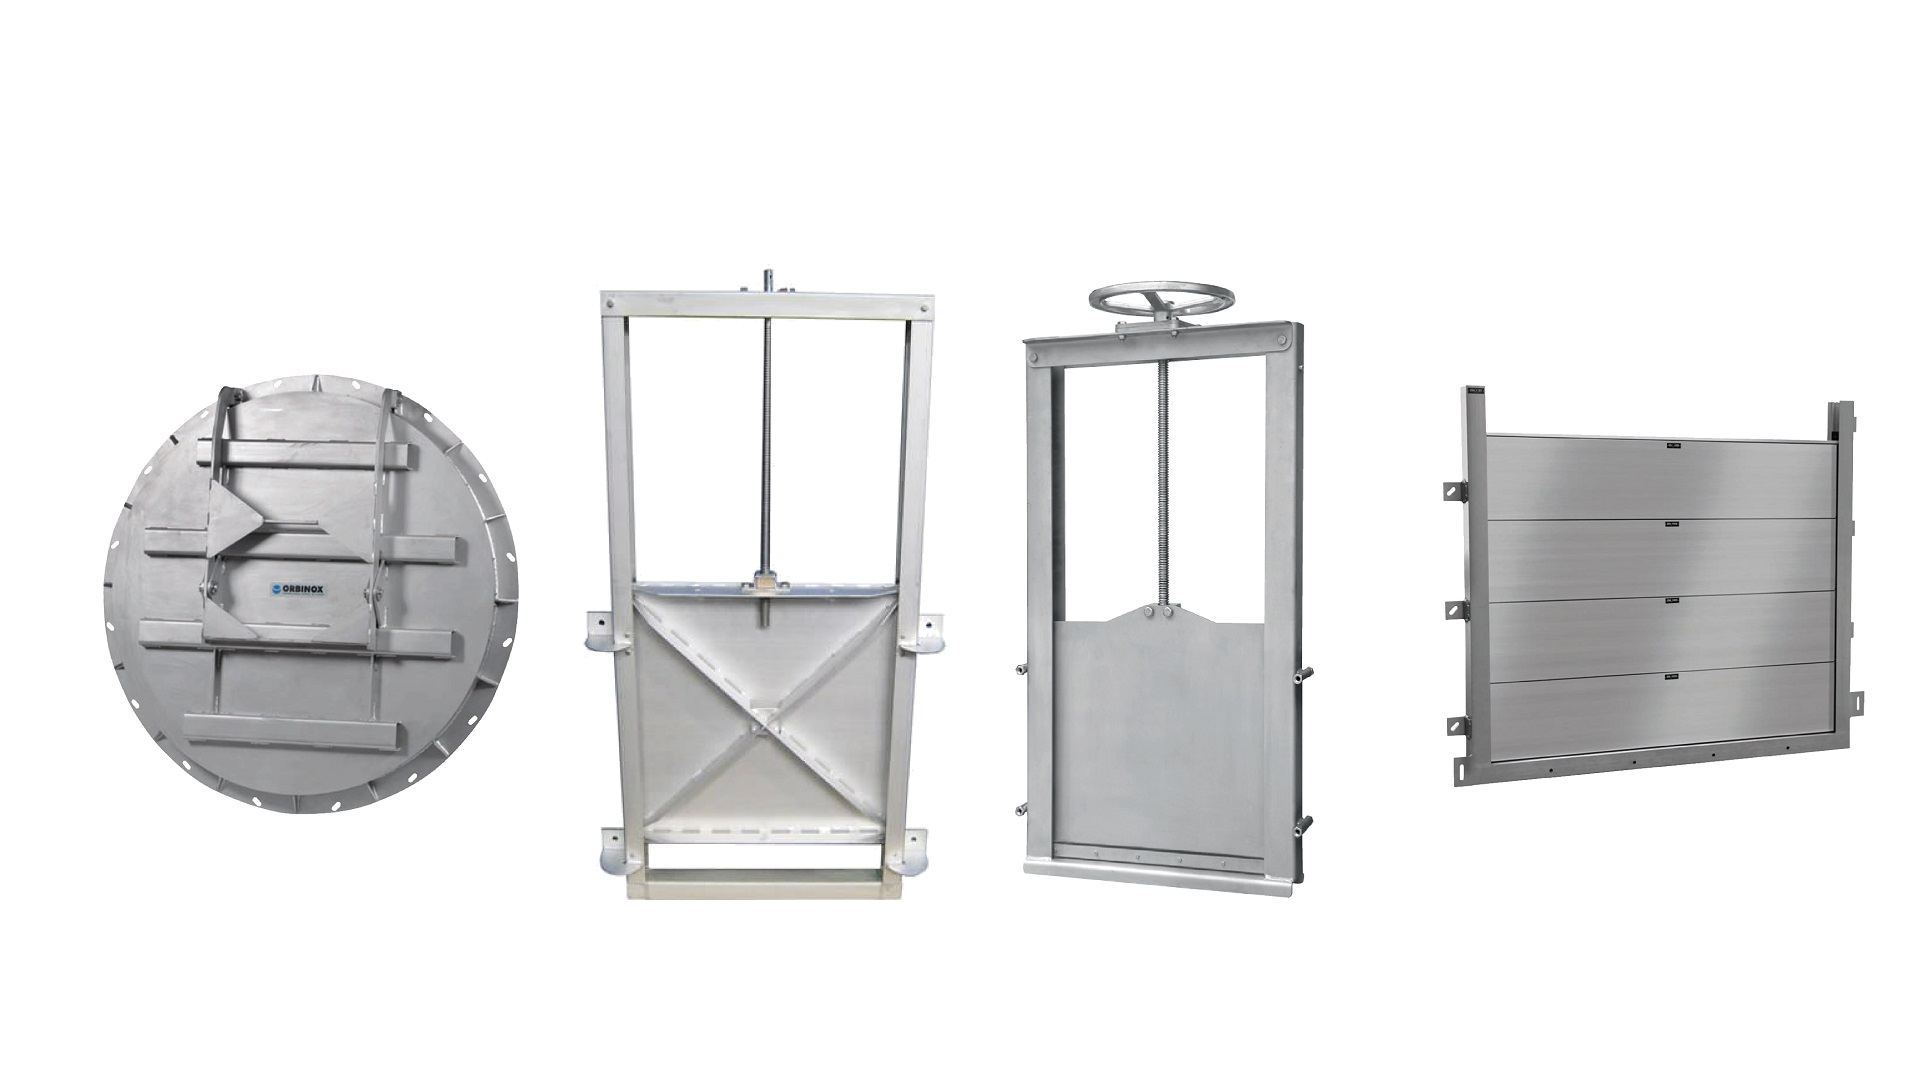 AVK Series 772 Penstocks range